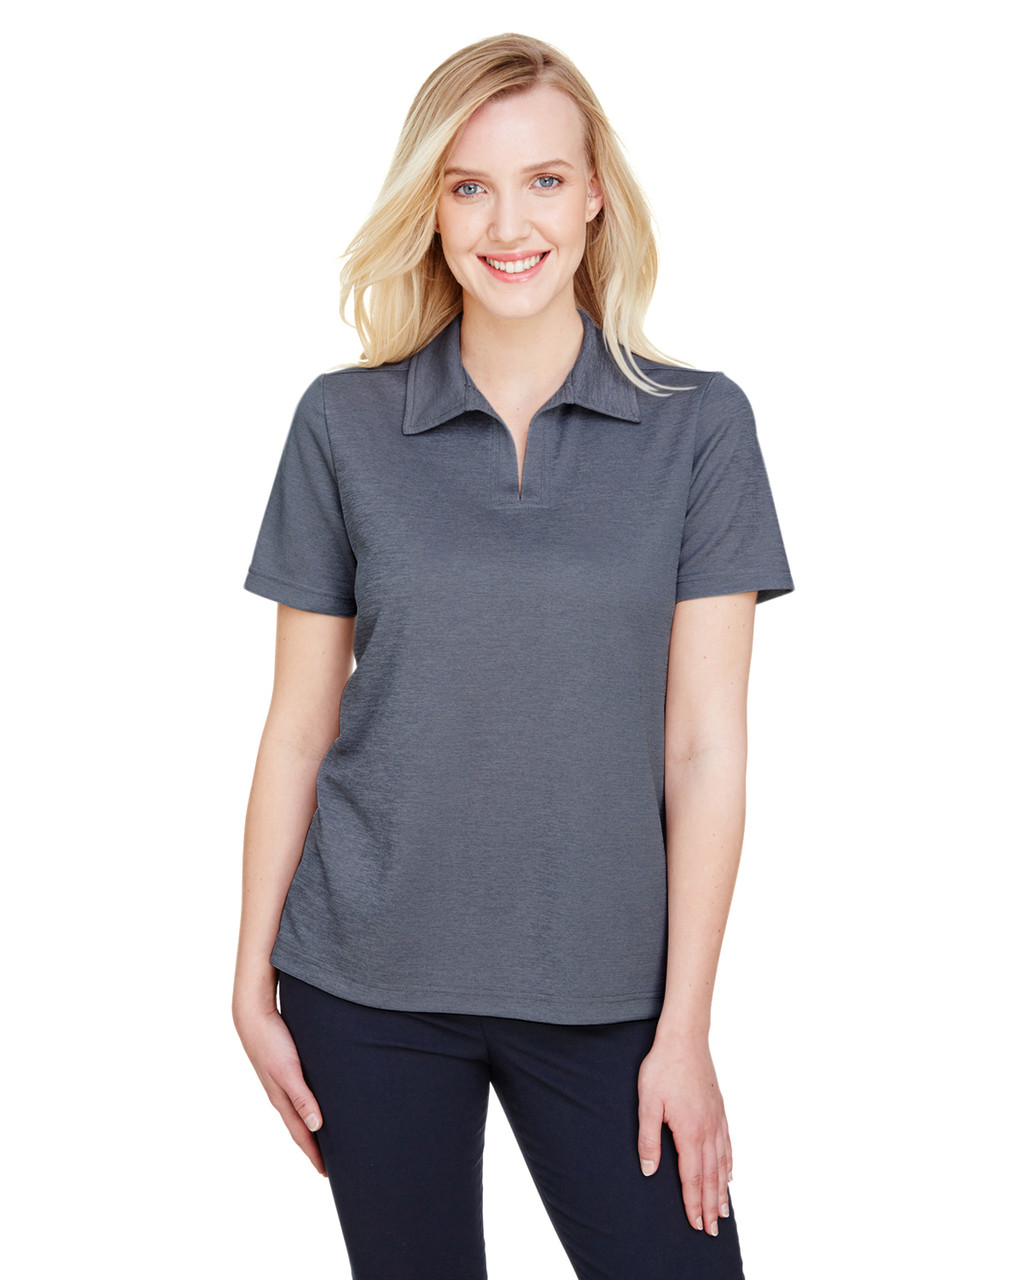 Navy Heather - DG22W Devon & Jones Ladies' CrownLux Performance™ Address Mélange Polo Shirt | BlankClothing.ca